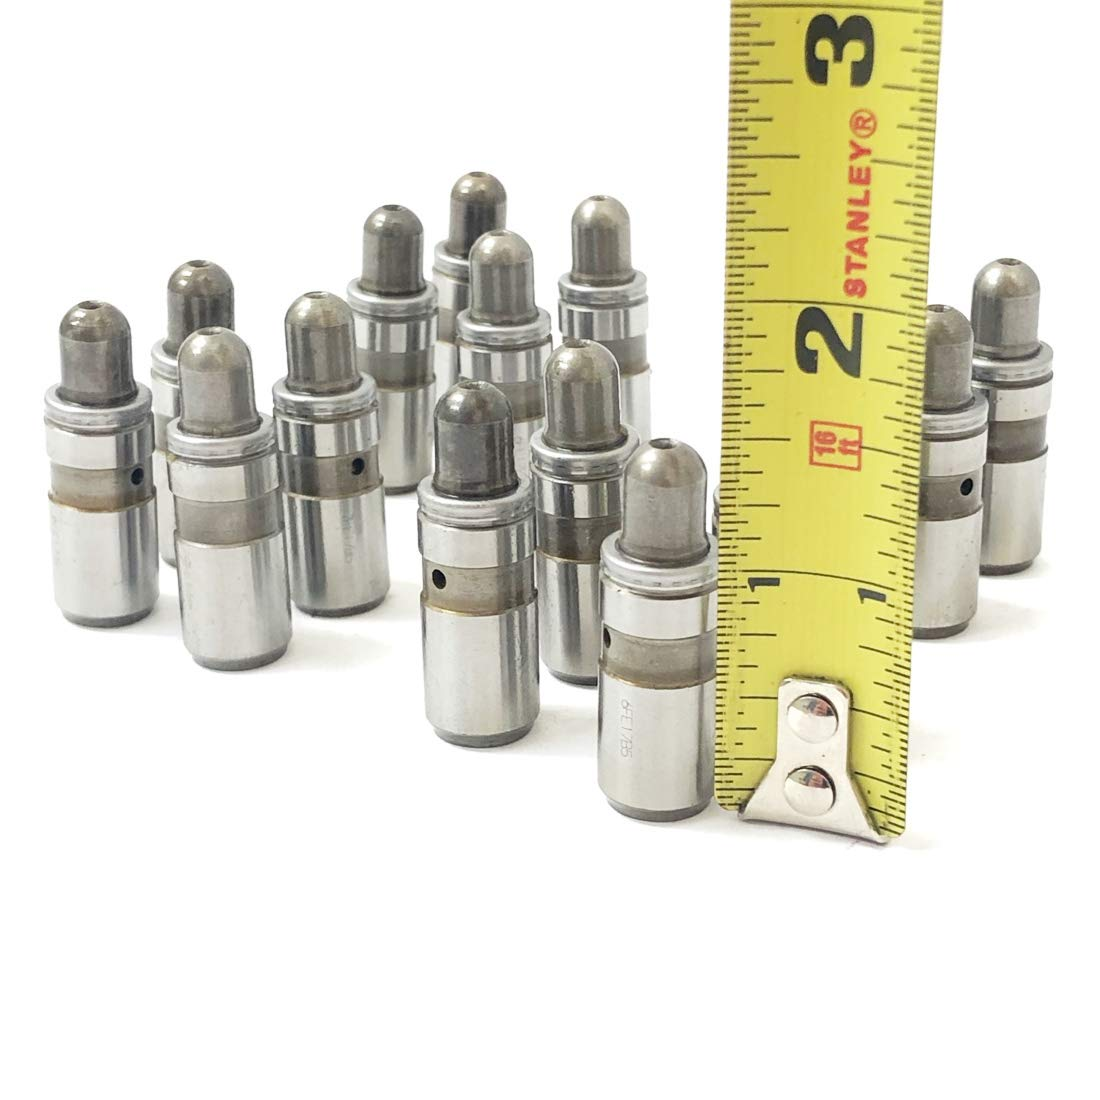 Free Priority Shipping! Set of 16 Brand New 100/% GM OEM Ecotec Lifters 24100005 1.9L 2.0L 2.4L 2.2L 2.4L #9194698